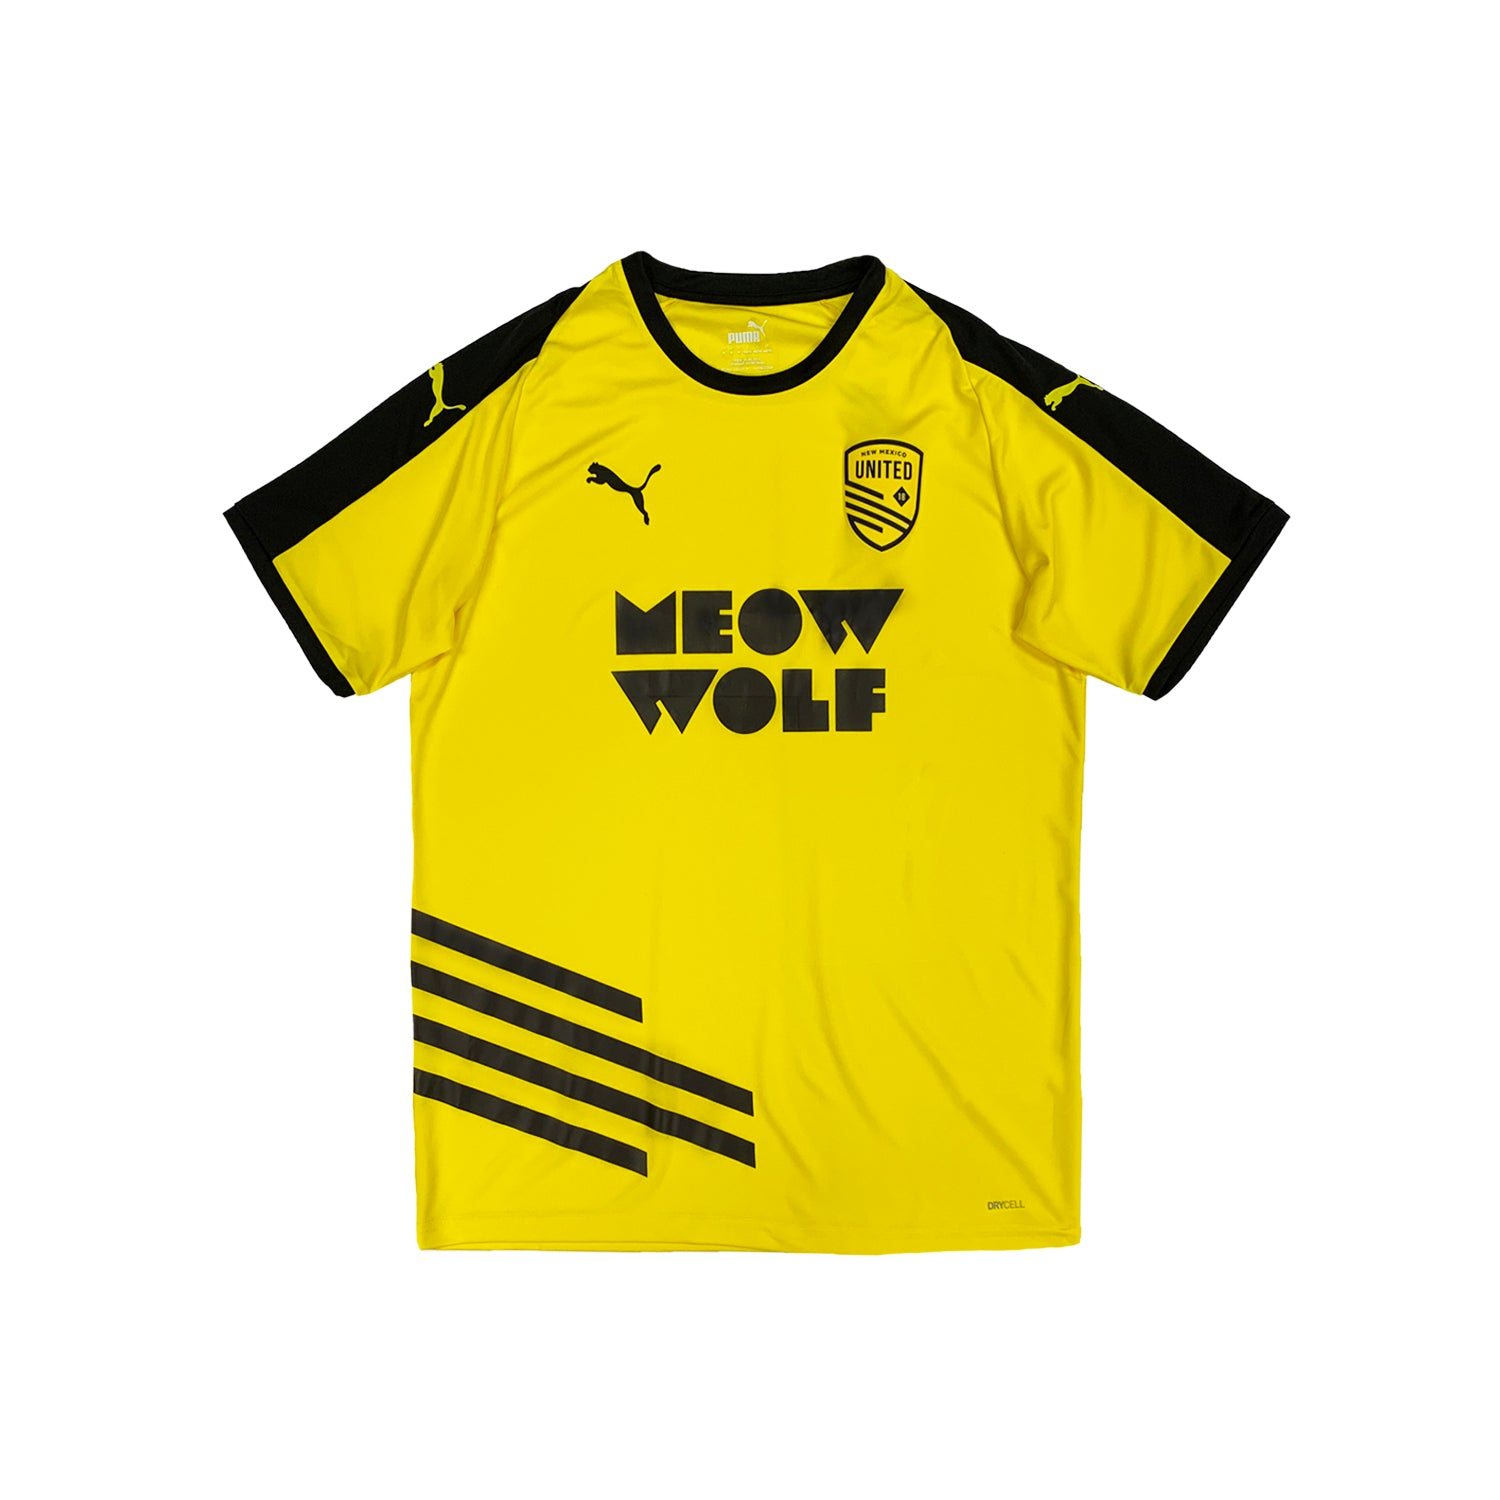 New Mexico United Youth Puma 2020 Meow Wolf Away Jersey